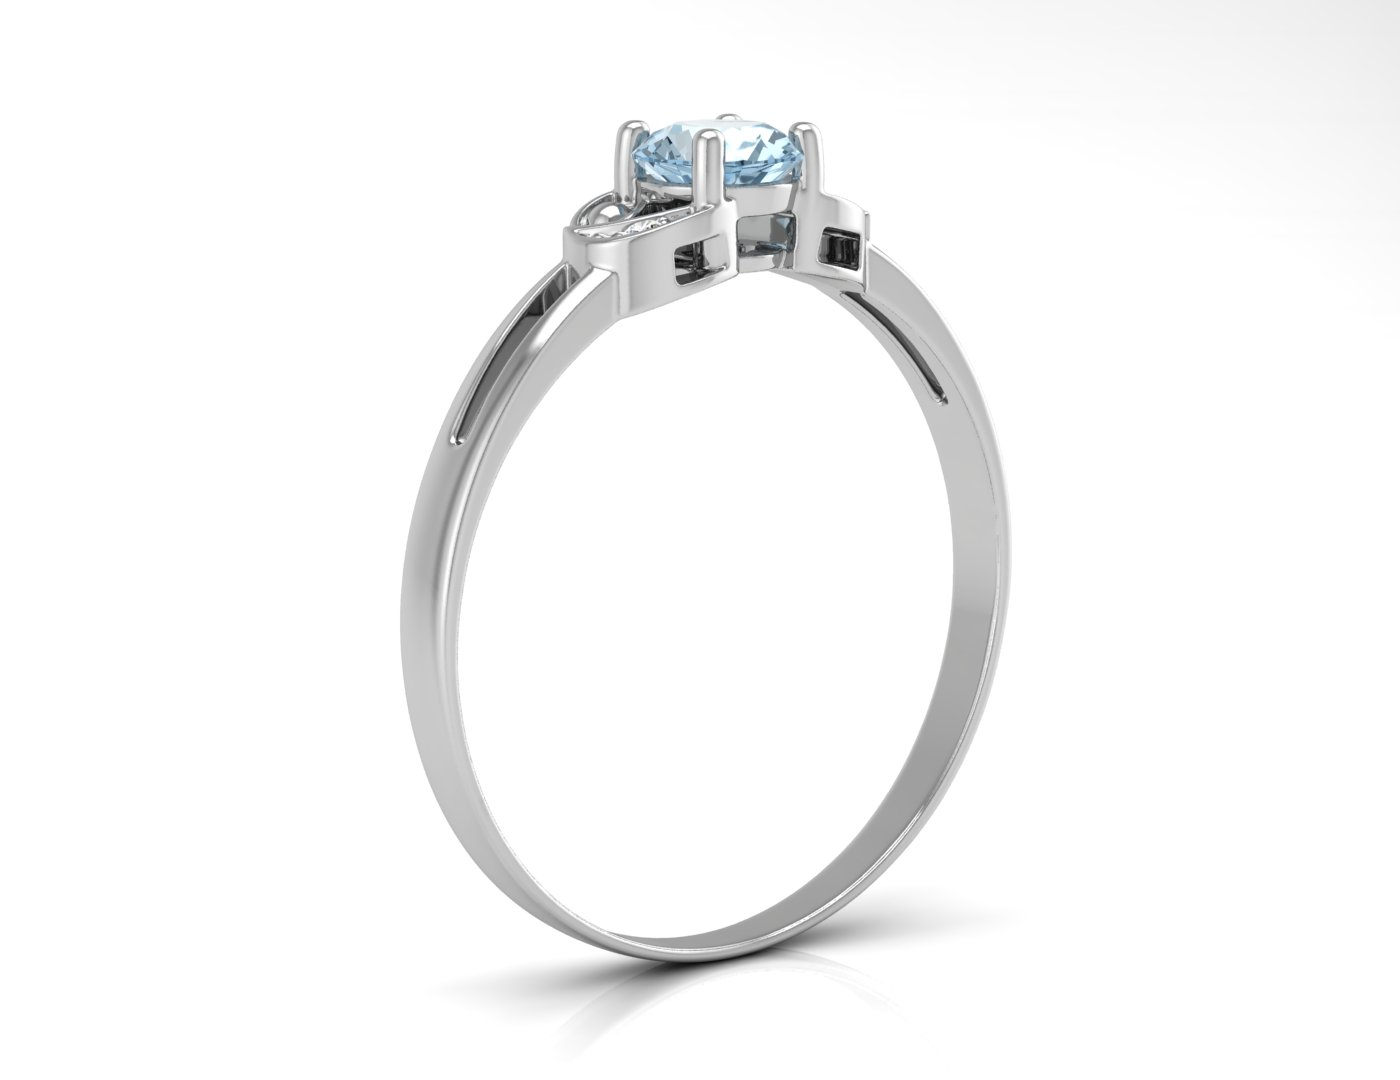 Lot 49 - 9ct White Gold Fancy Cluster Diamond And Blue Topaz Ring 0.01 Carats